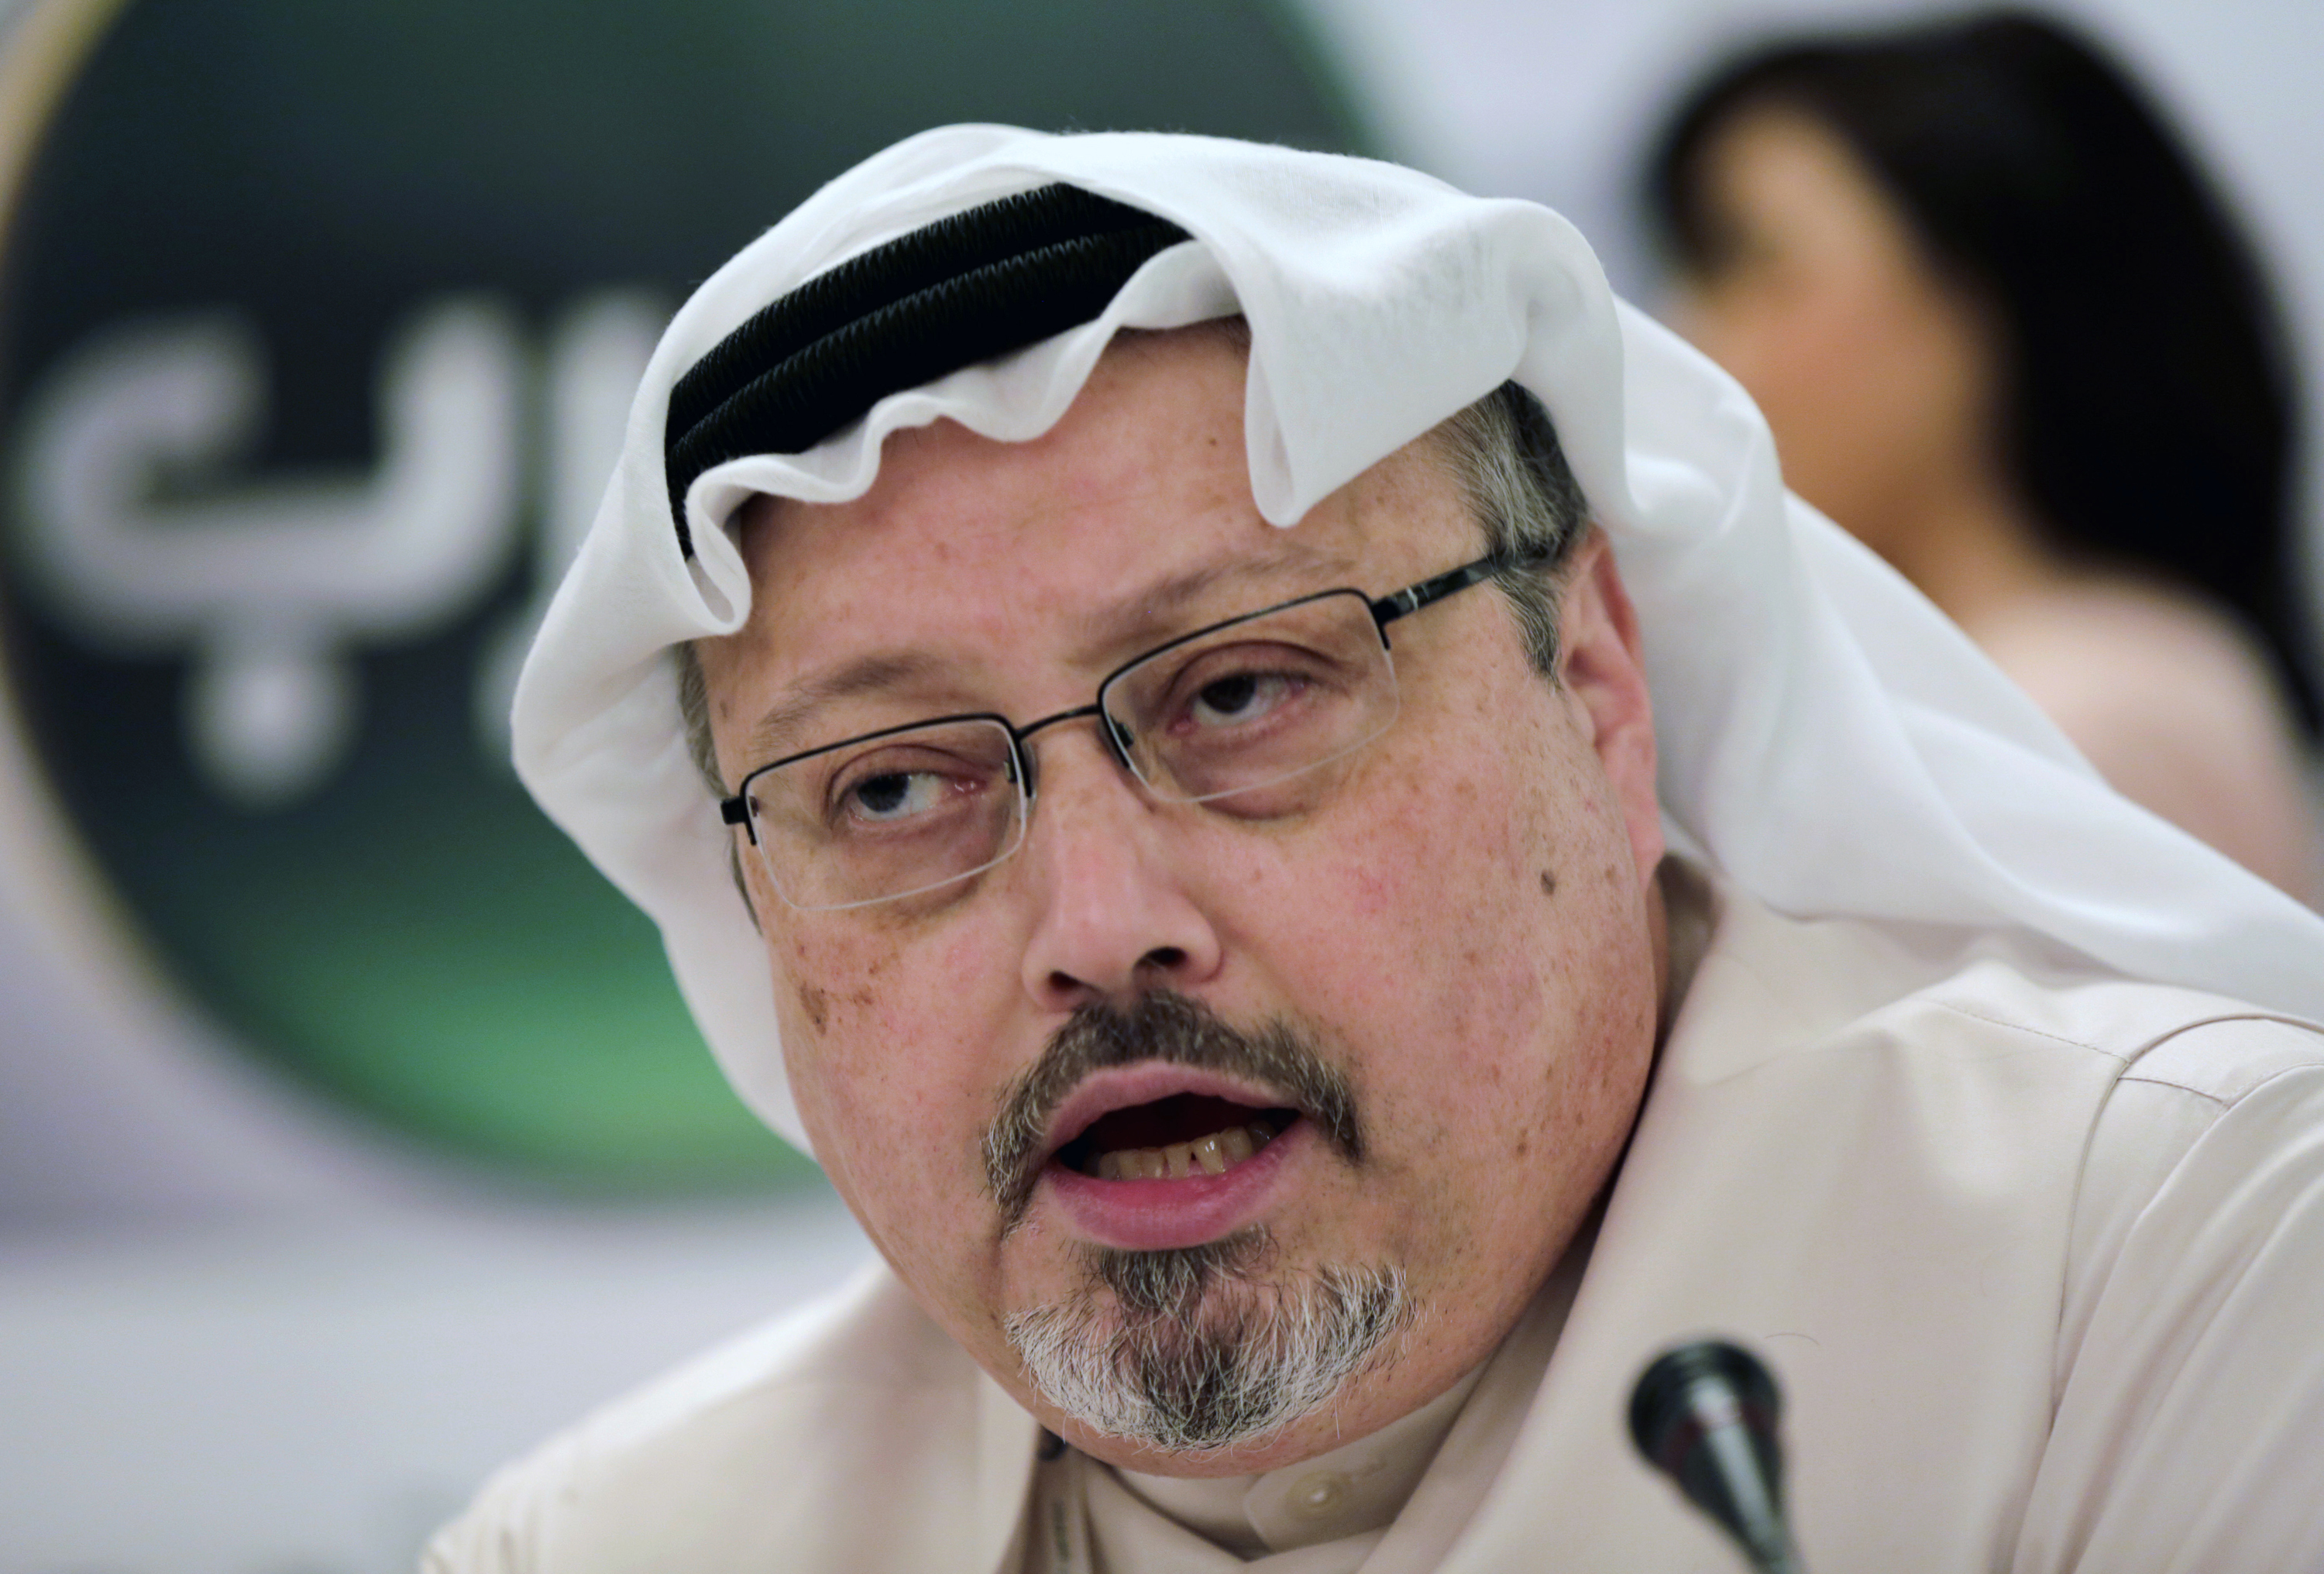 Ex-aide to Saudi Crown Prince bin Salman among those banned for role in Khashoggi killing